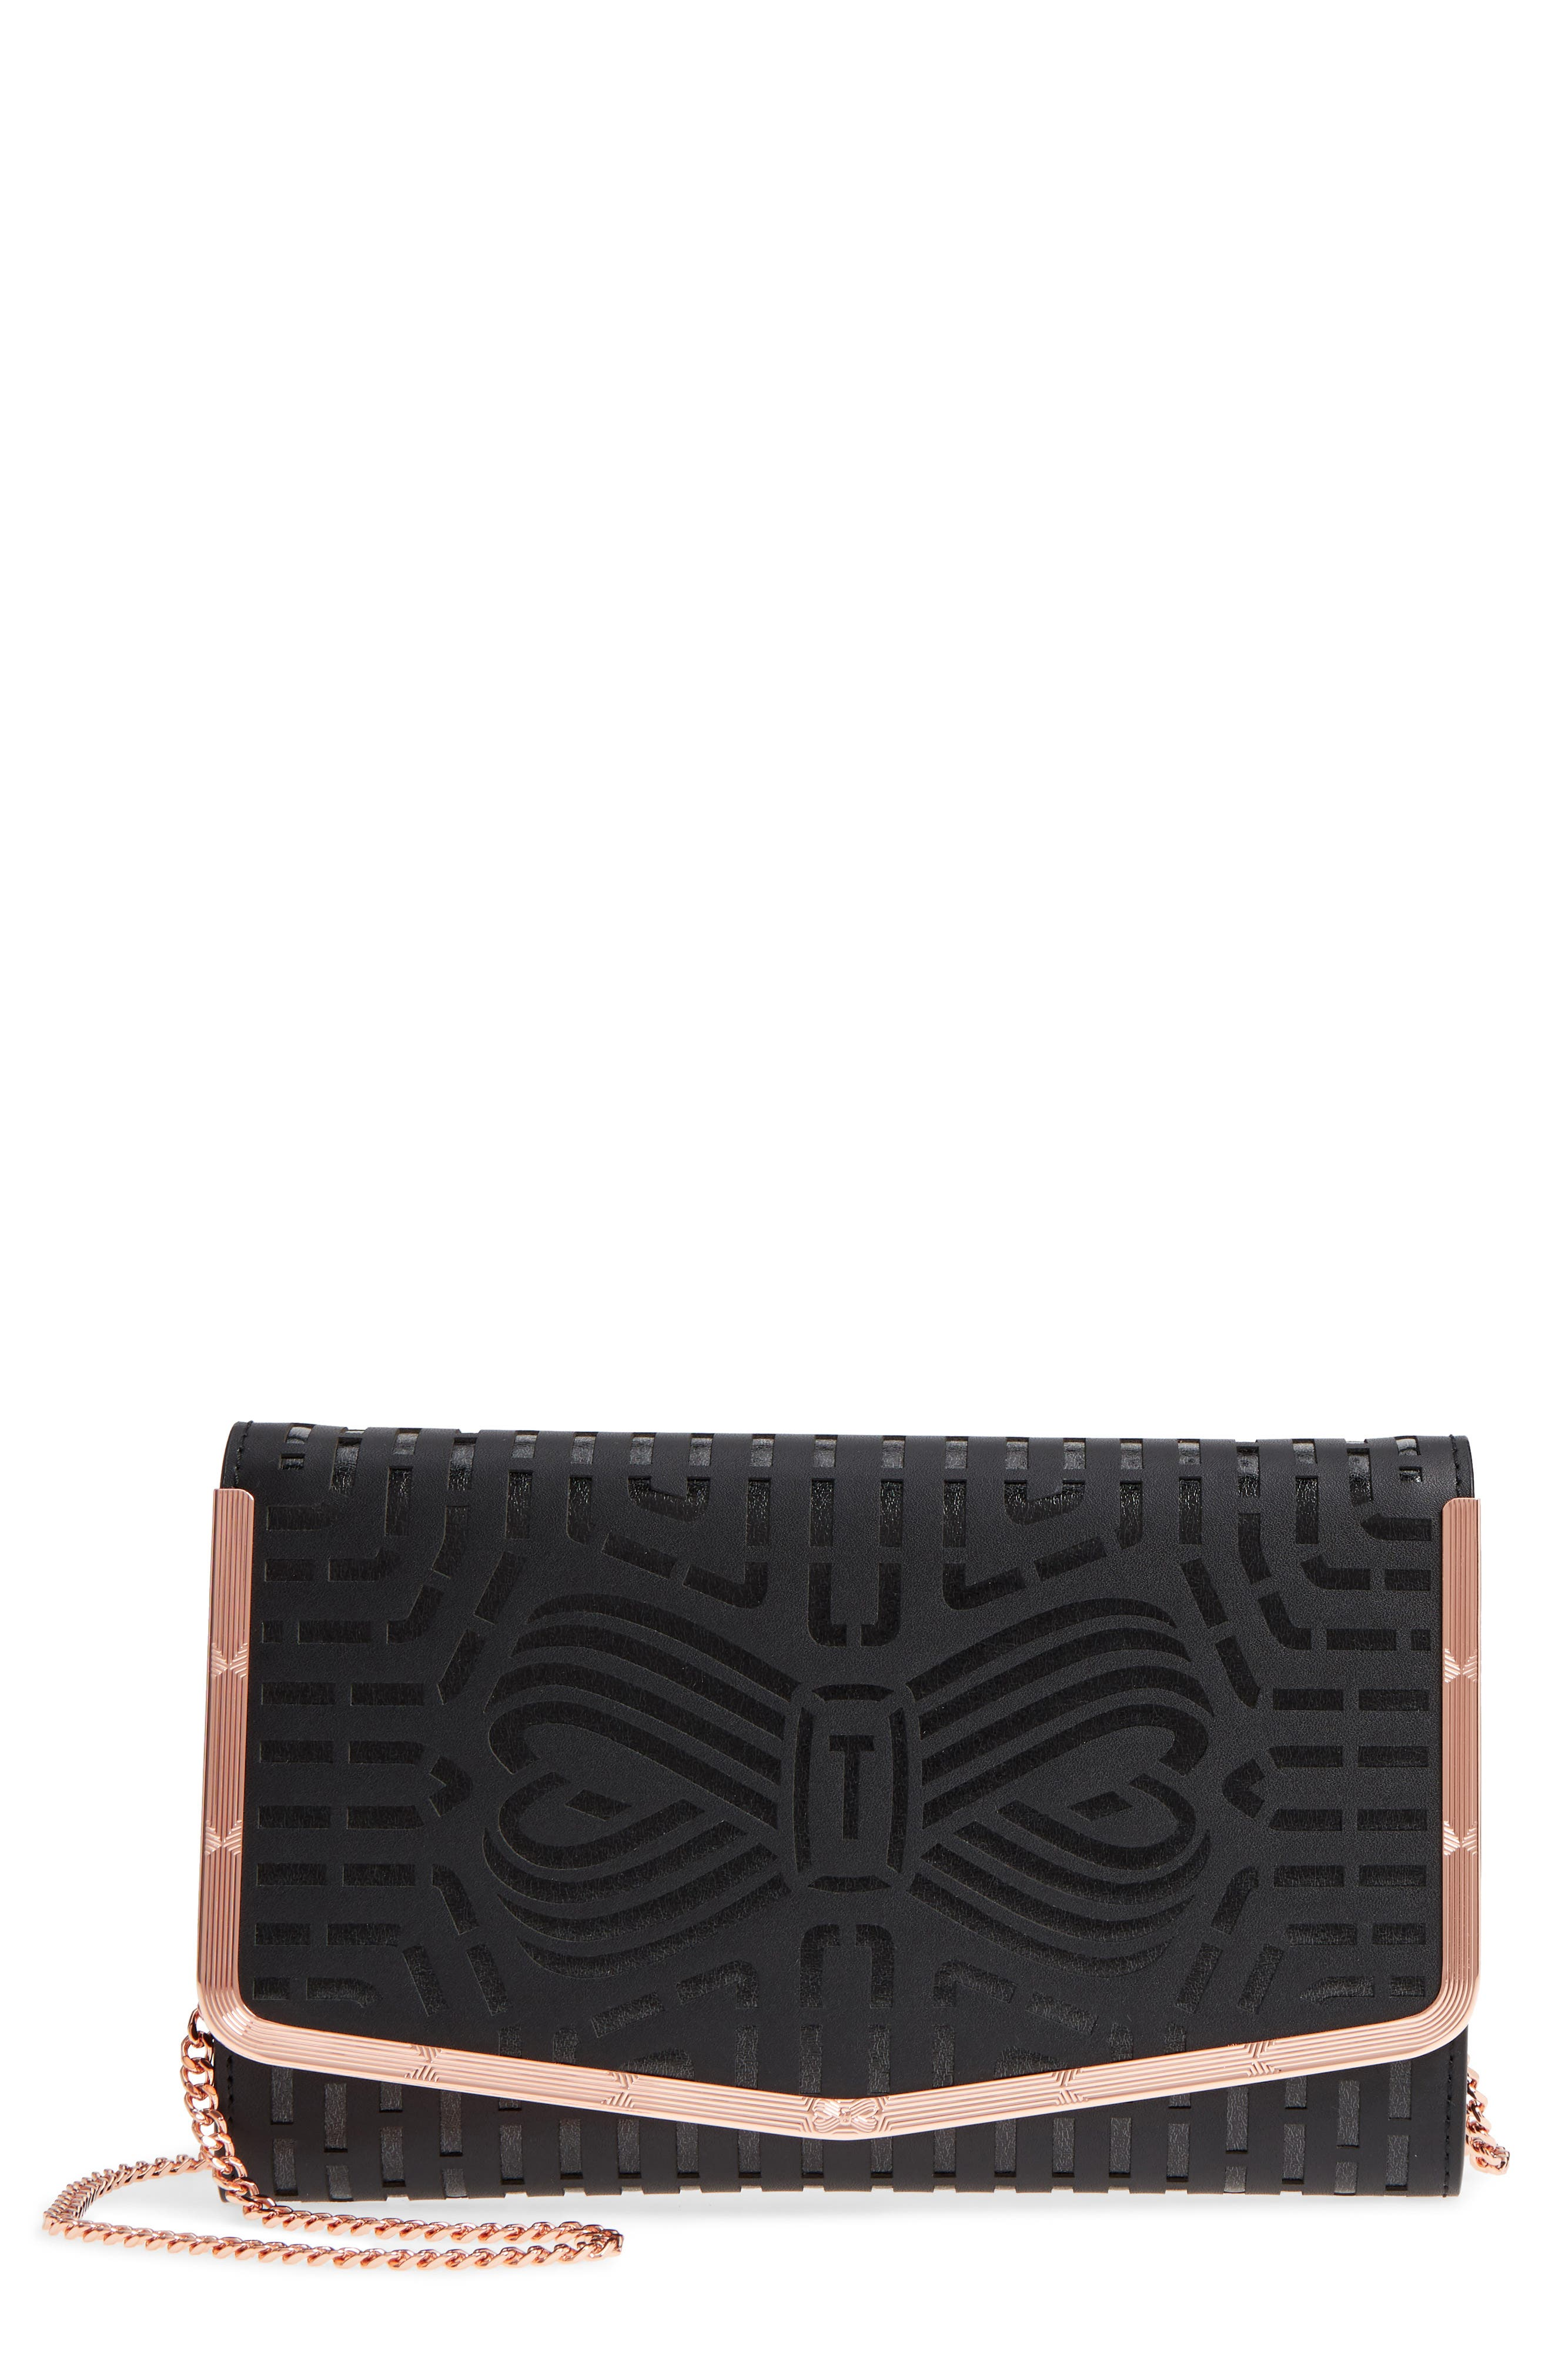 Bree Laser Cut Bow Leather Clutch,                             Main thumbnail 1, color,                             001